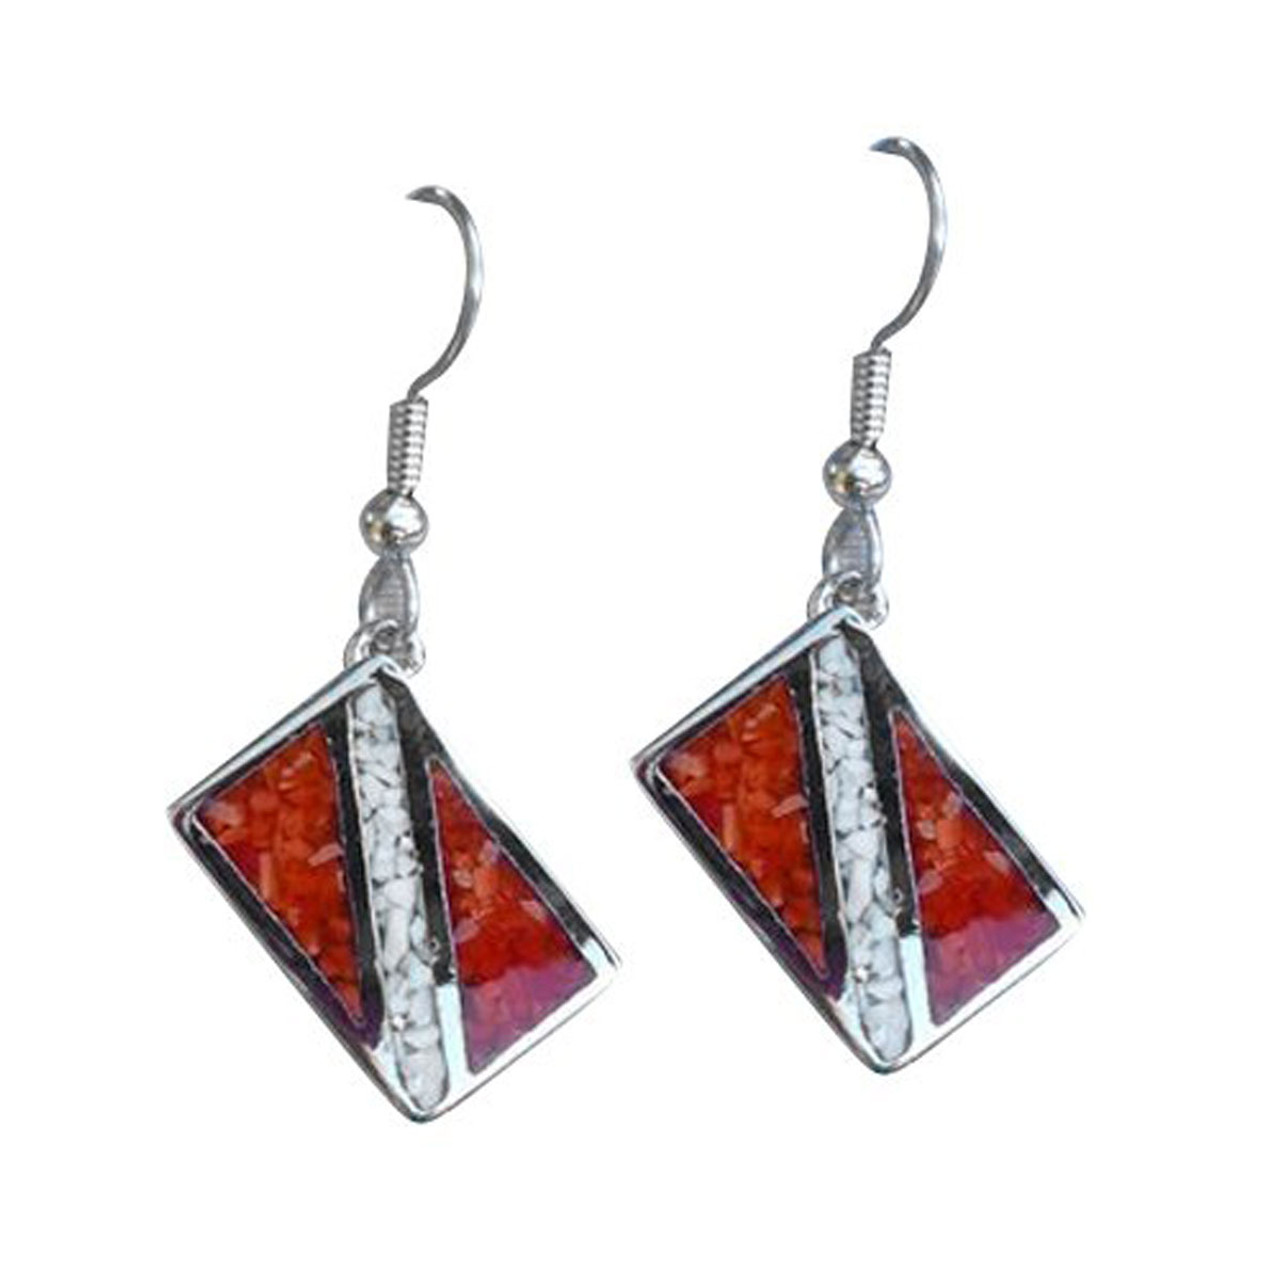 Dive Flag Earrings Scuba Diving Diver Jewelry